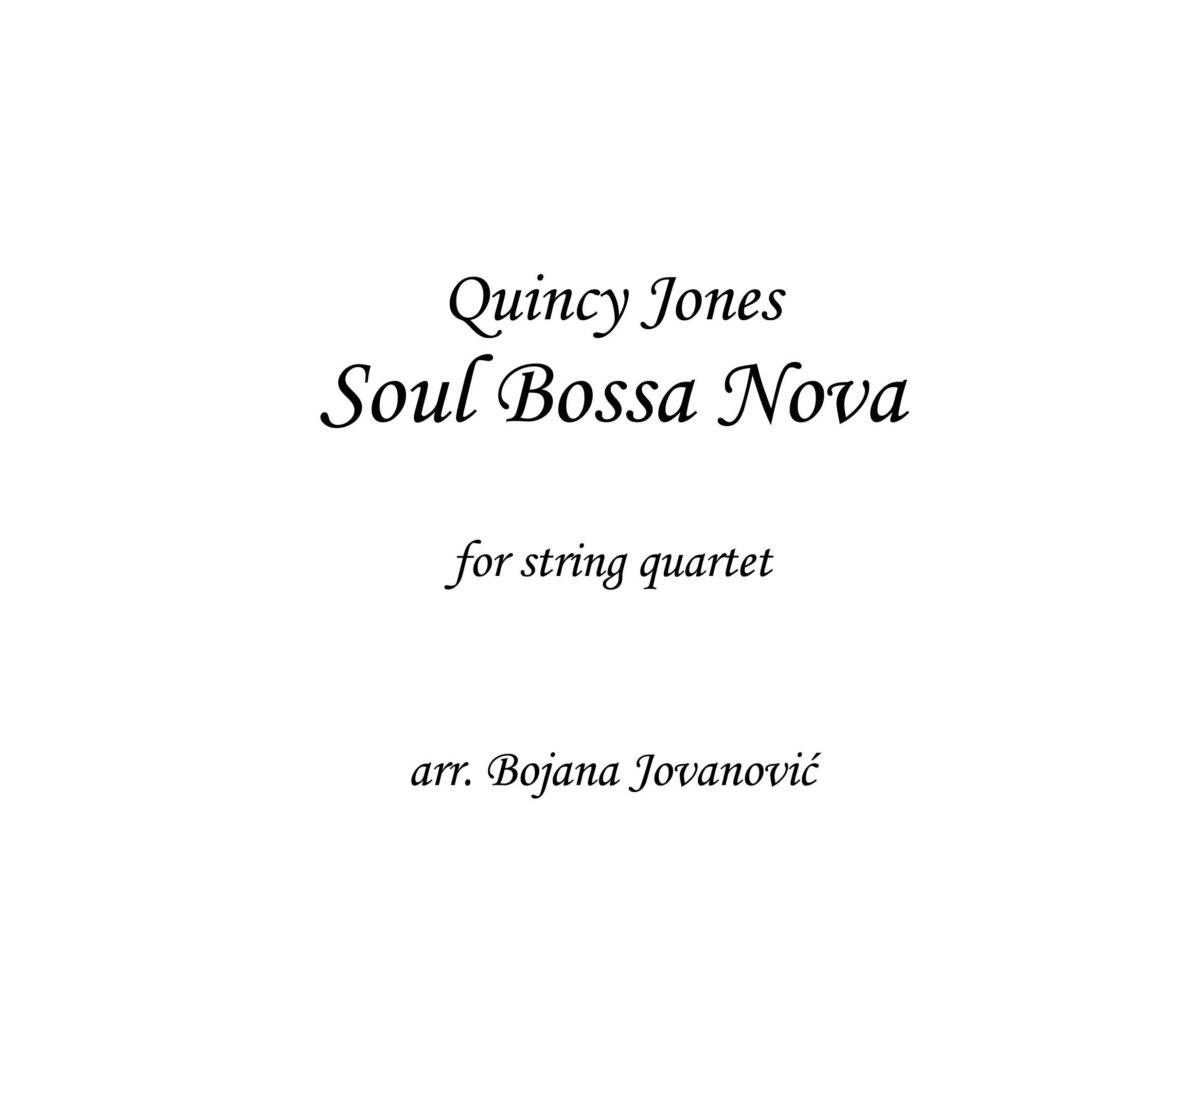 Soul Bossa nova (Quincy Jones) - Sheet Music